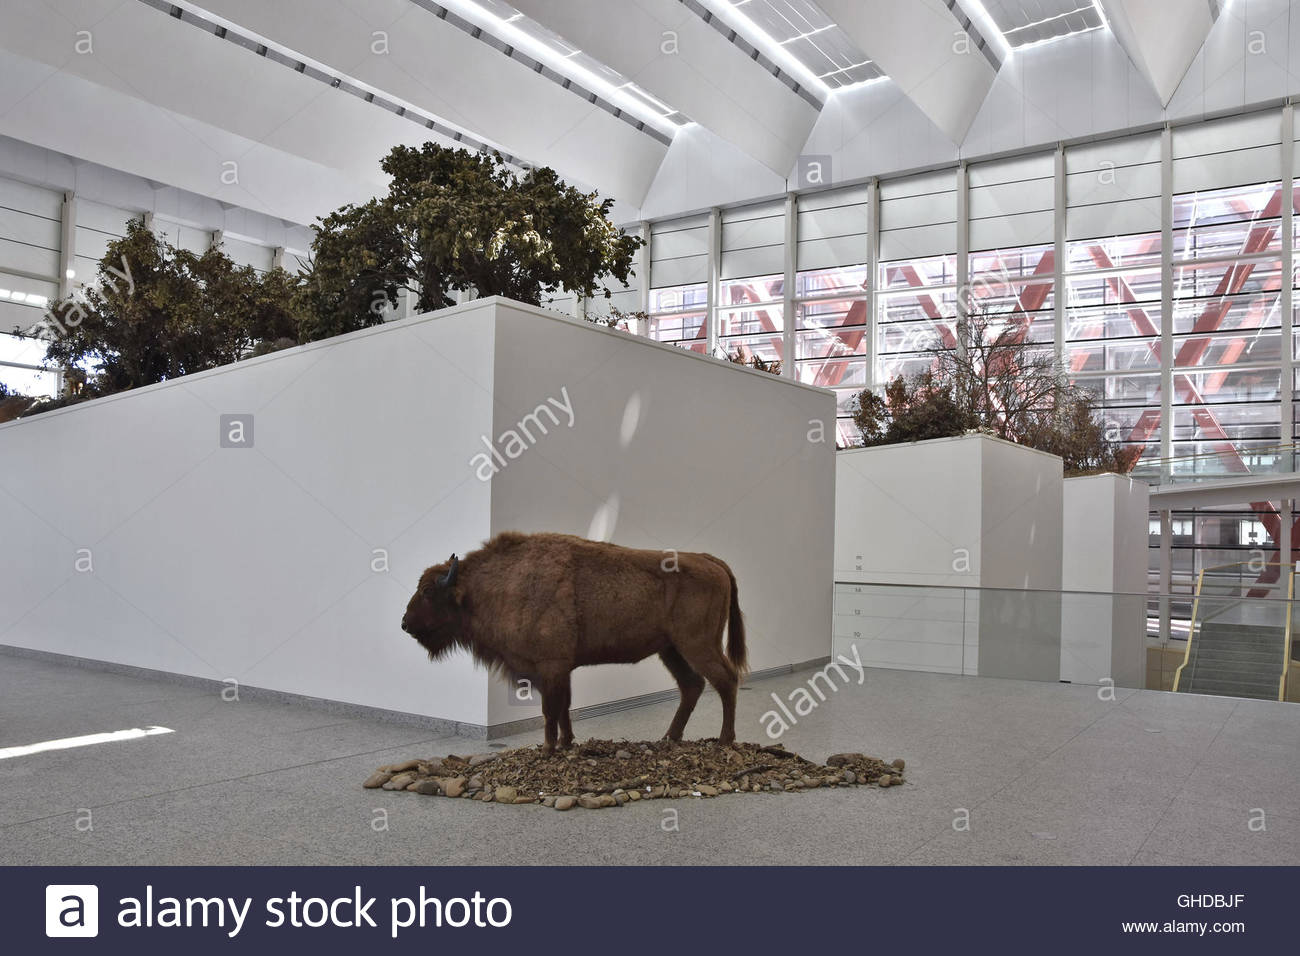 Museum of Human Evolution (Museo de la Evolución Humana) interior Stock Photo...